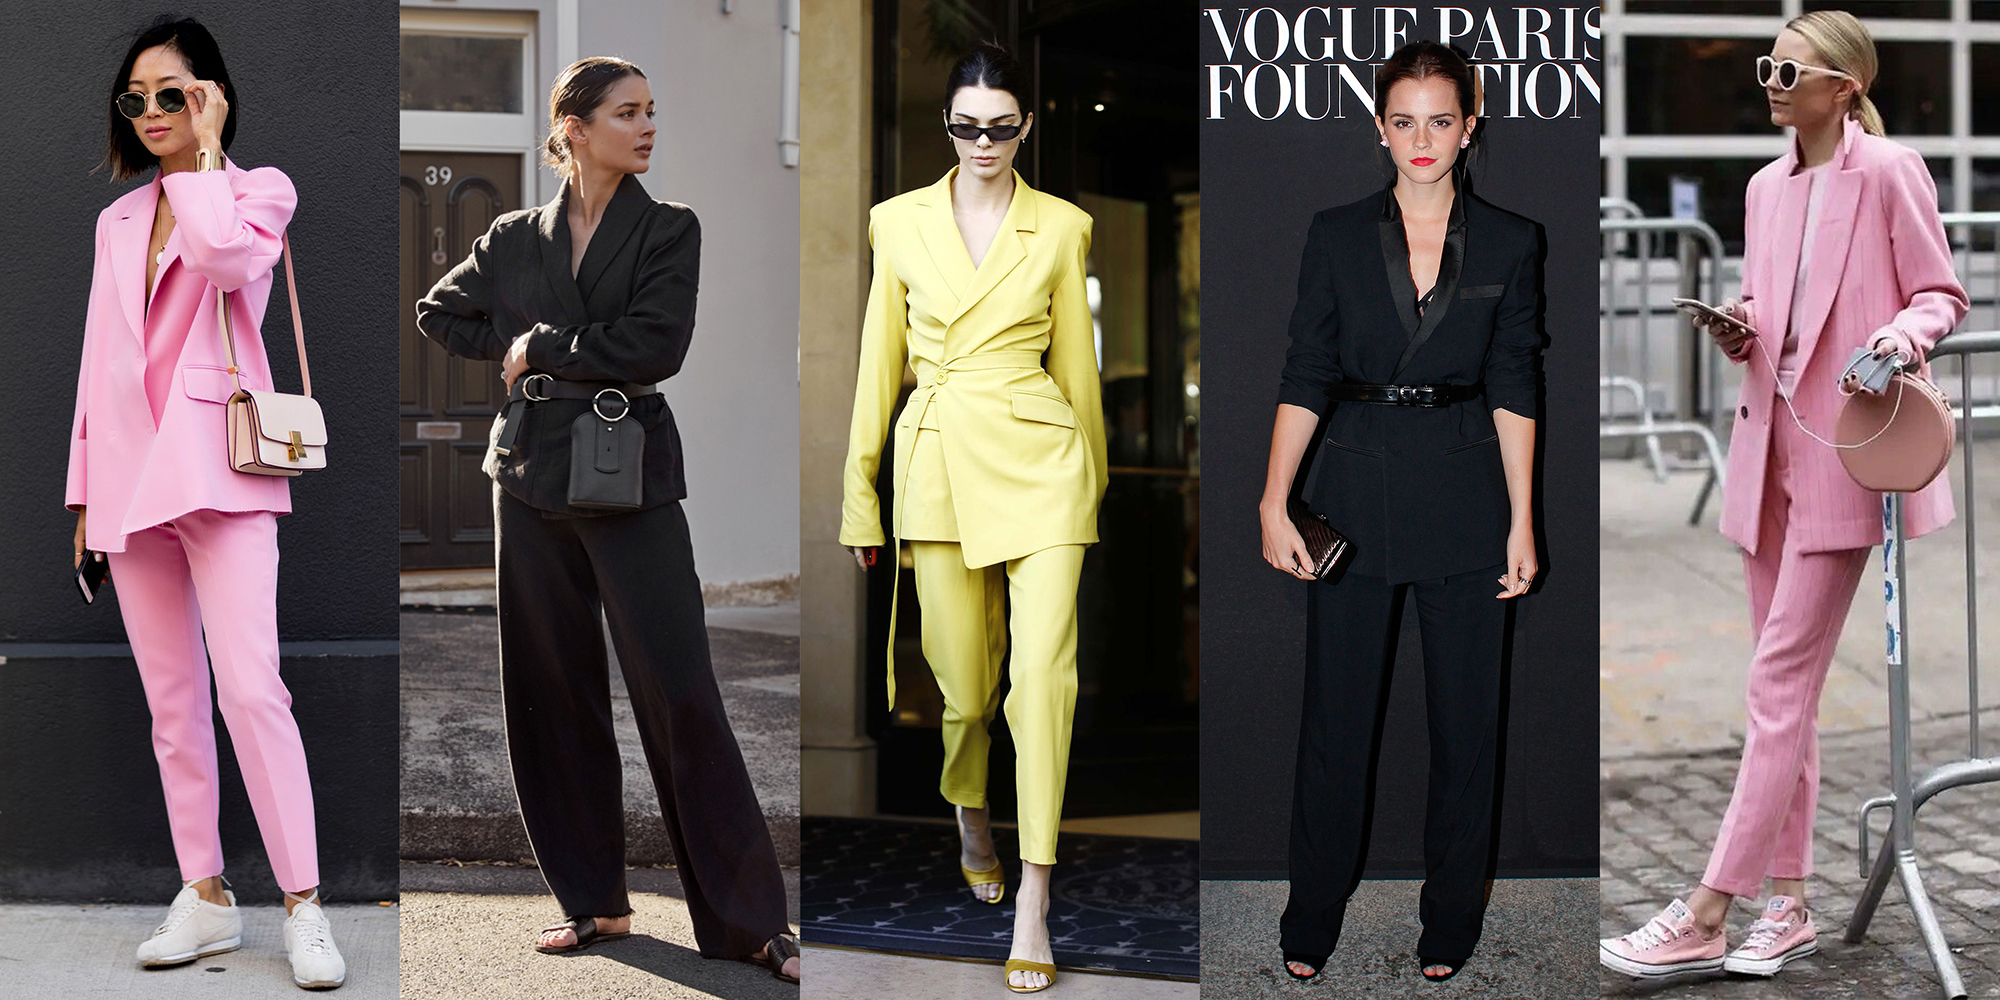 10-ways-to-wear-monochromatic-outfits-9.jpg